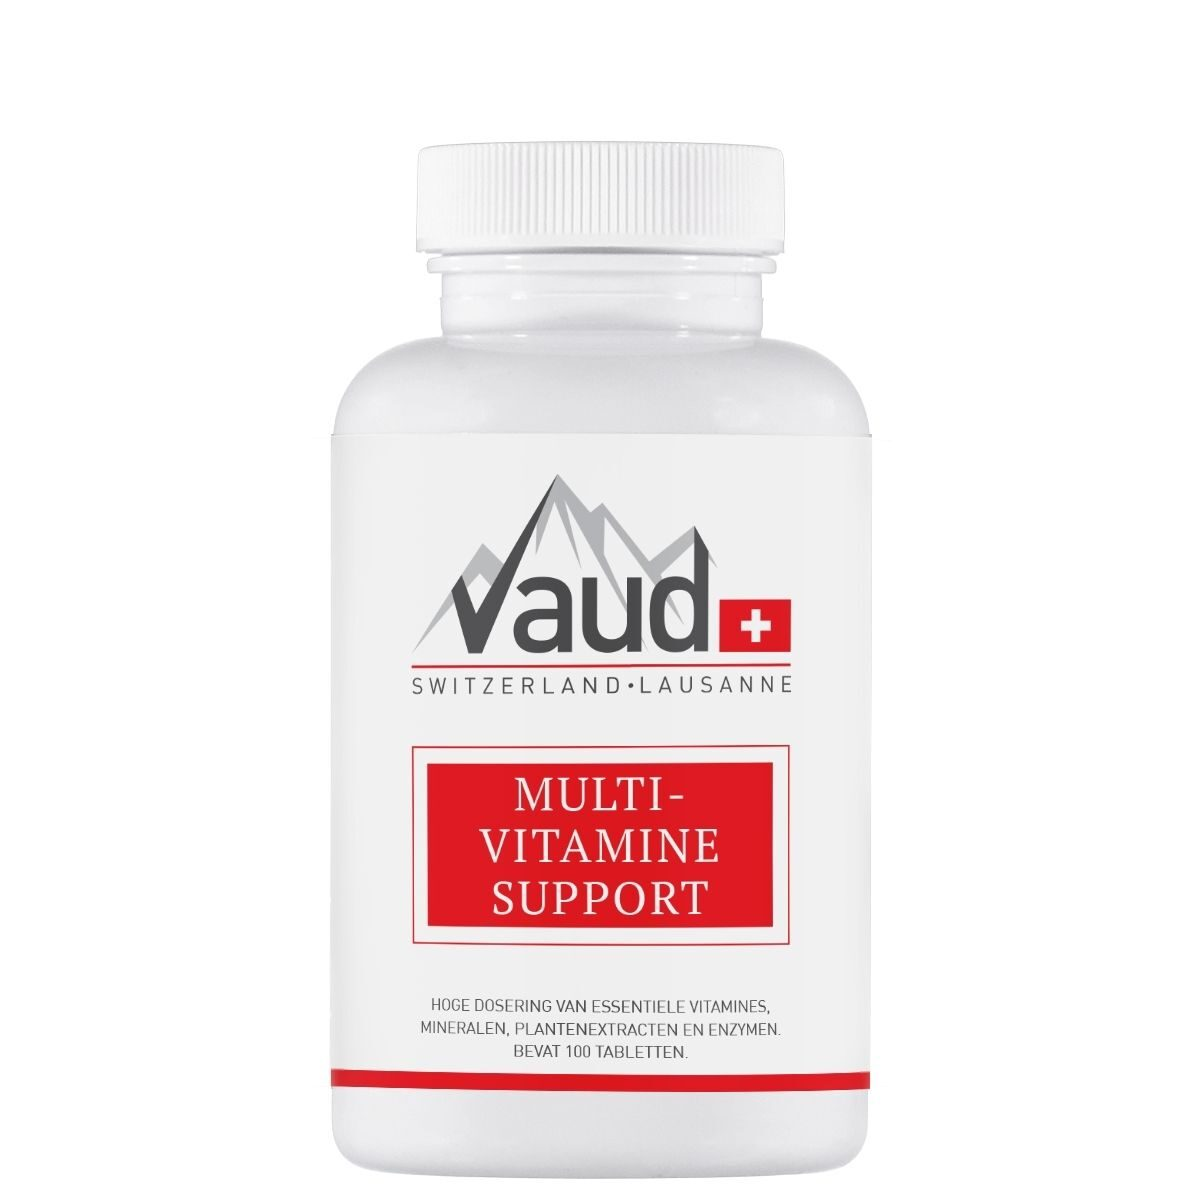 Multi Vitamine Support Vaud